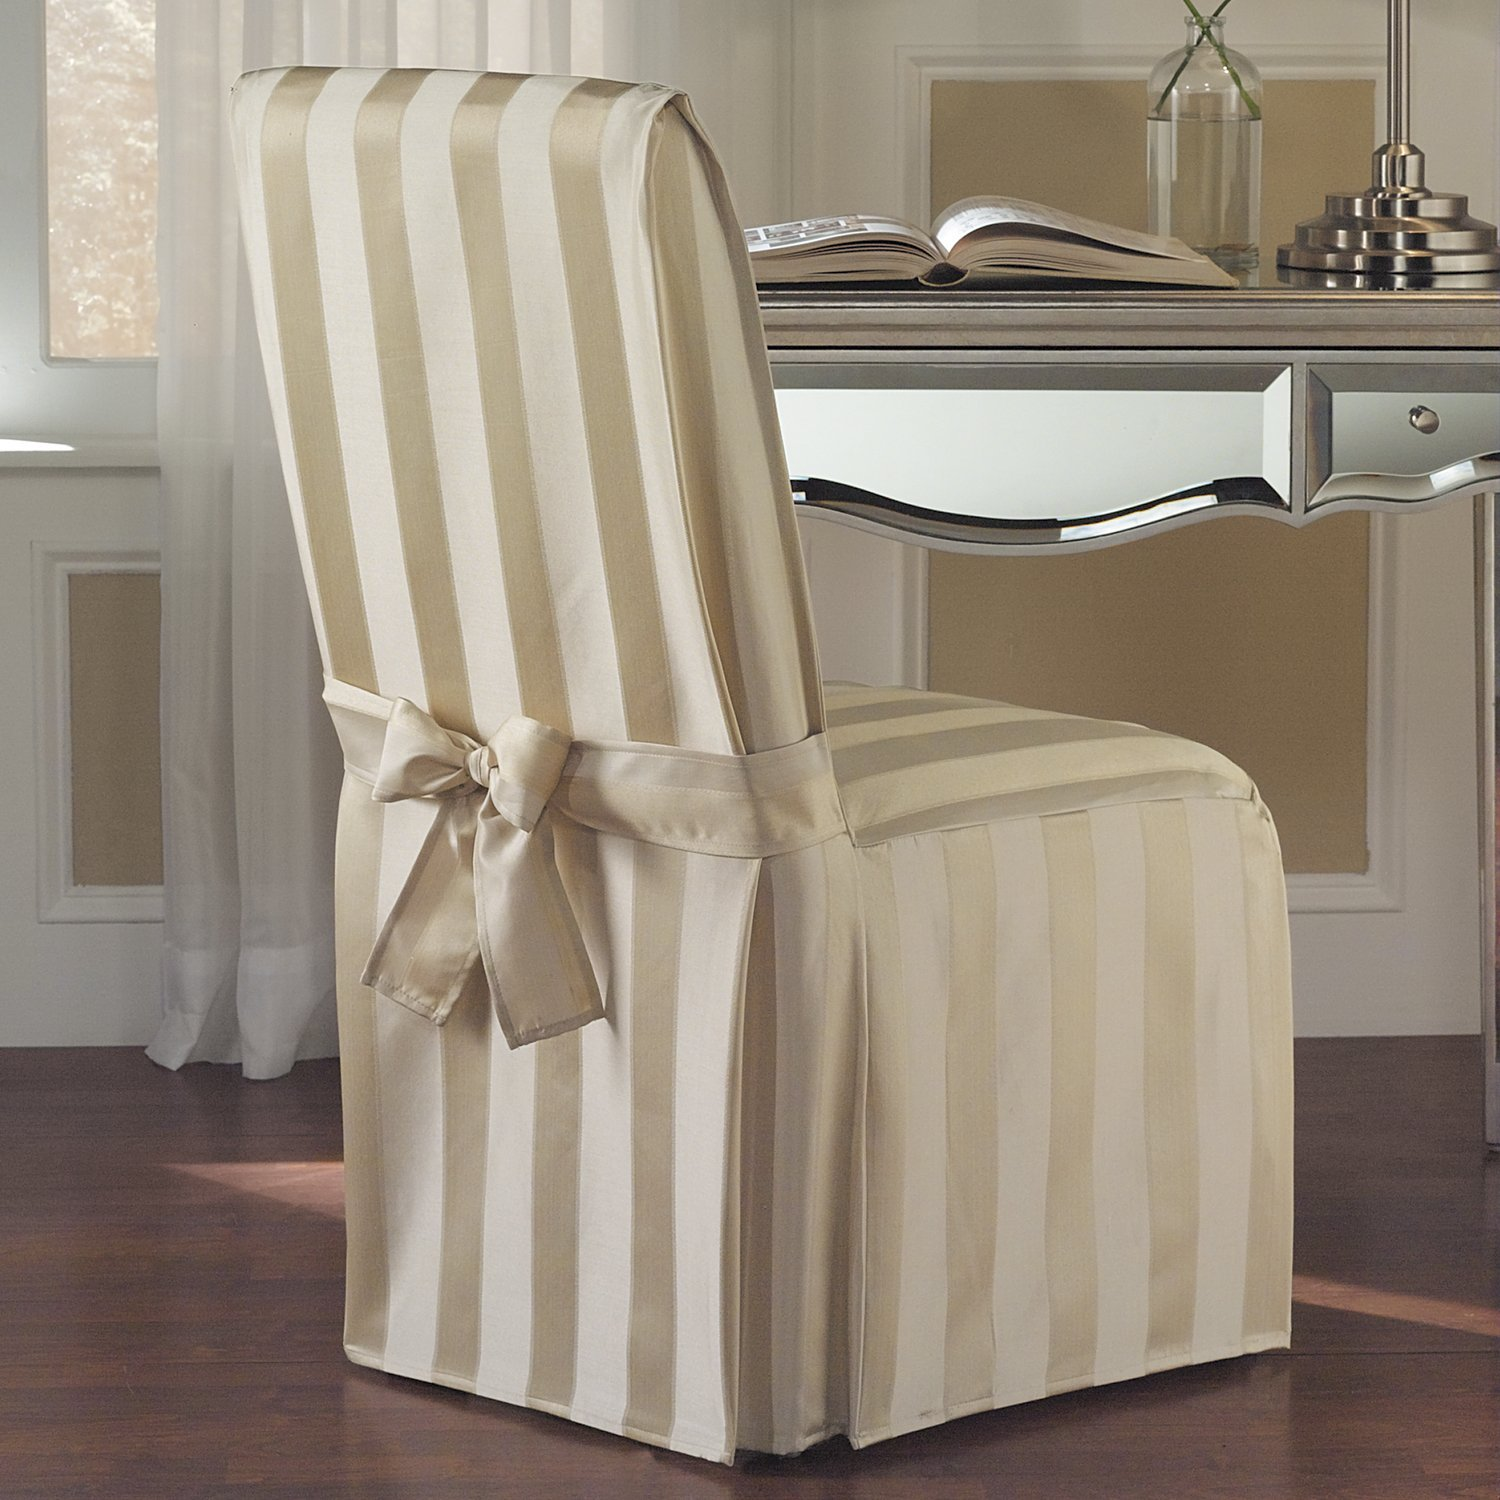 Top 10 Best Dining Room Chair Covers for Sale in 2015 Review : United Curtain Dining Room Chair Cover from www.topportalreview.com size 1500 x 1500 jpeg 283kB